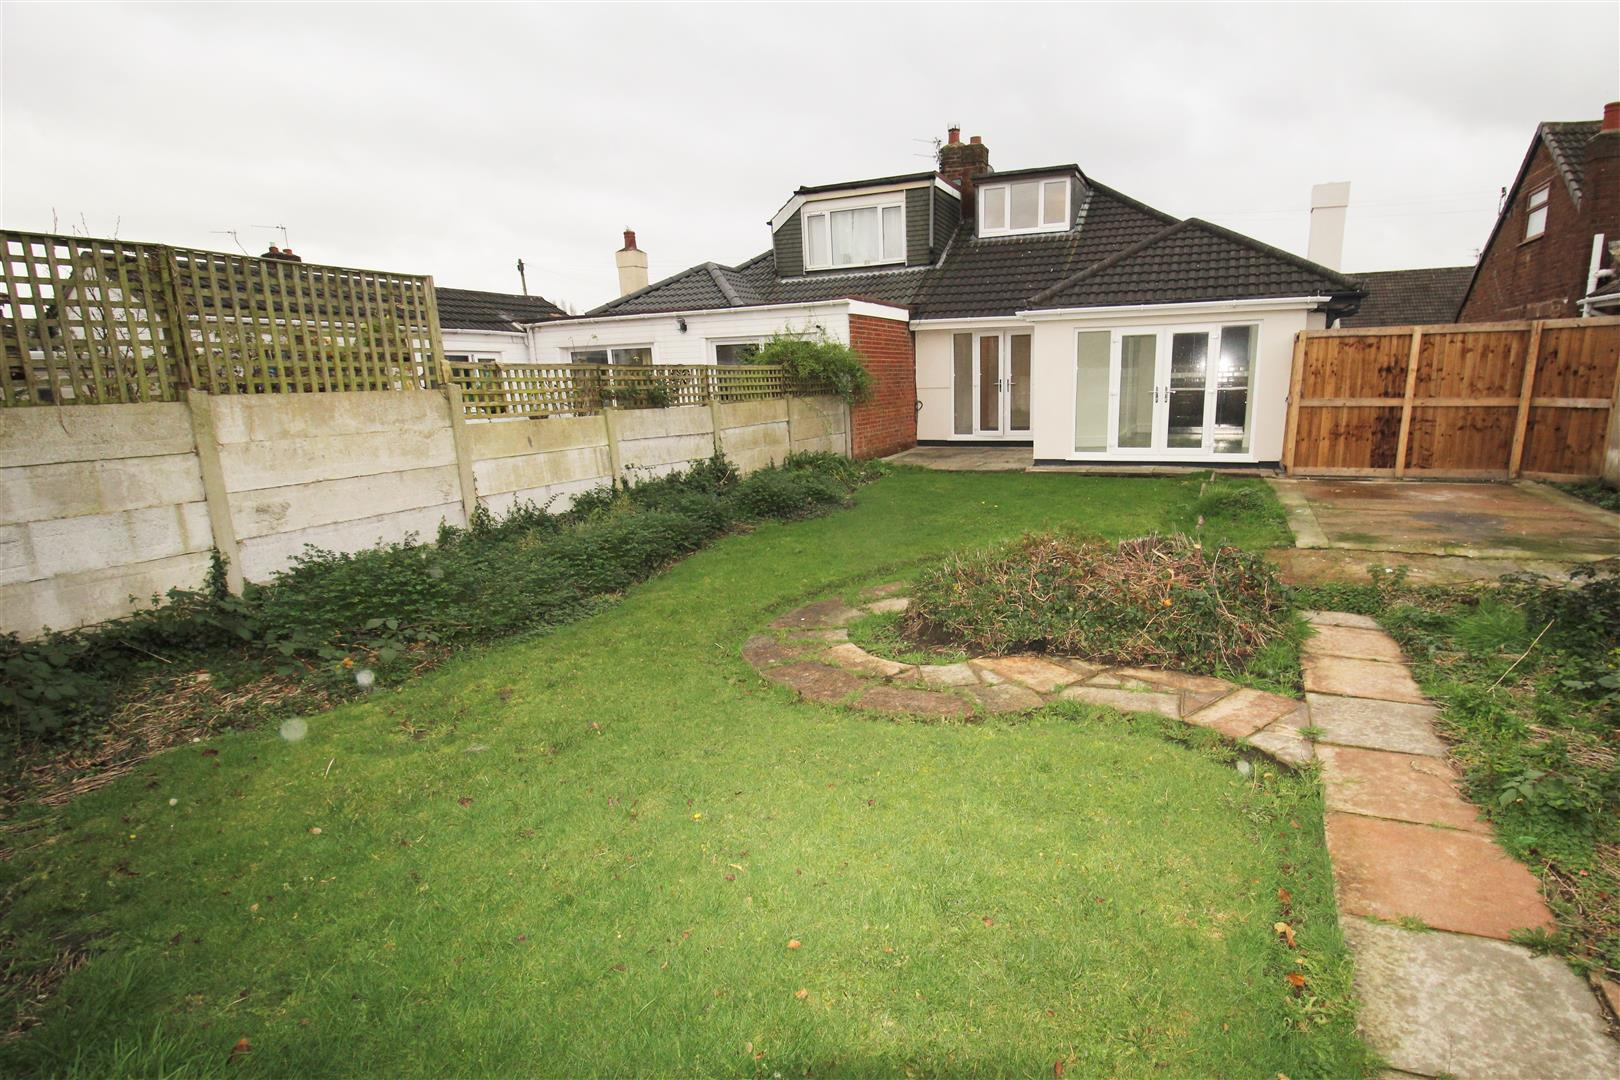 2 Bedrooms, Bungalow - Semi Detached, Cranwell Close, Liverpool